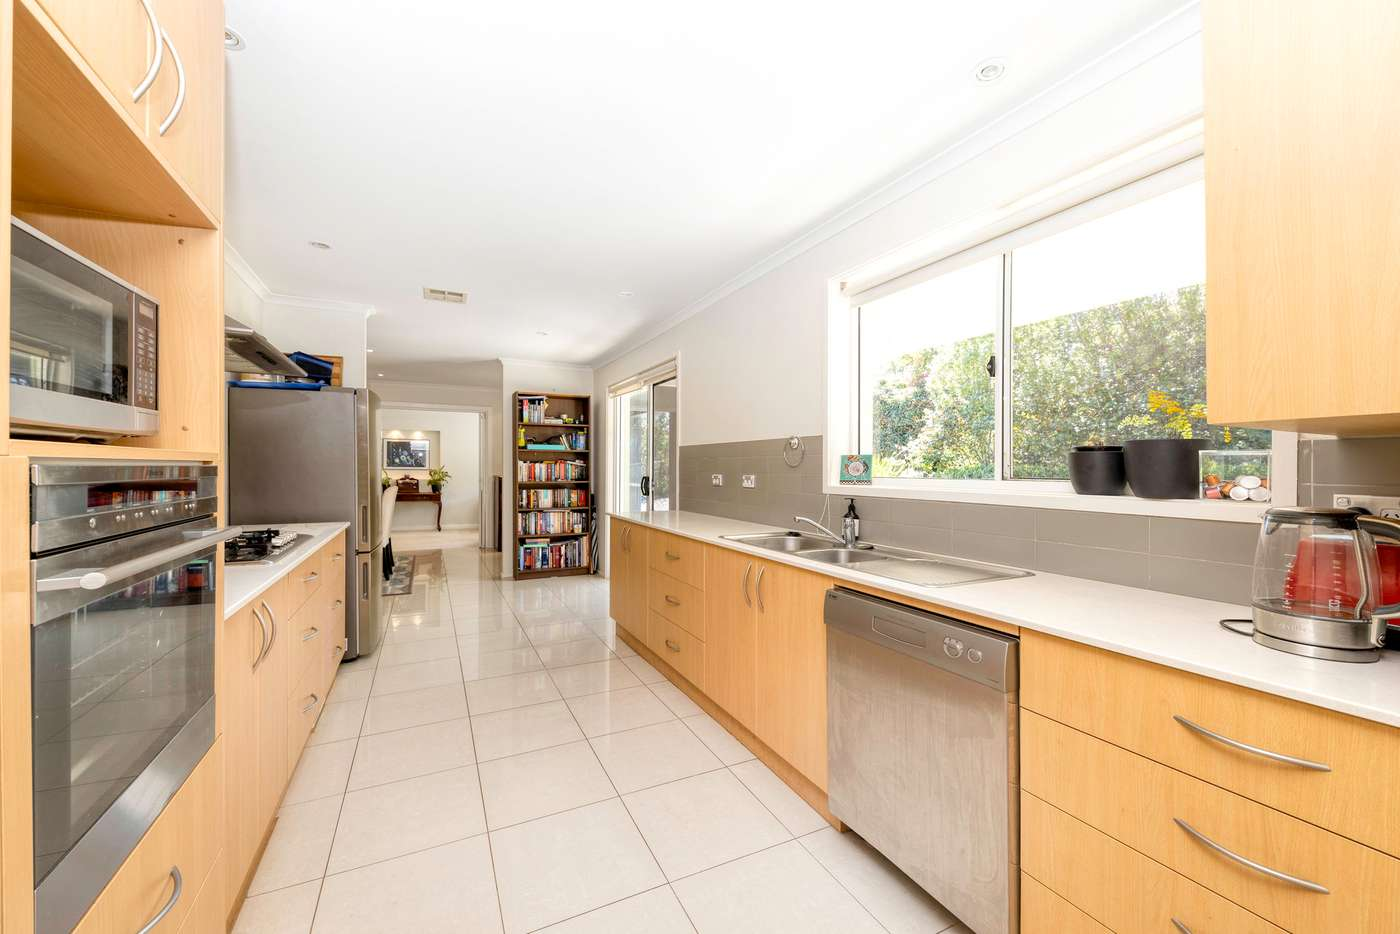 Sixth view of Homely house listing, 33 Maclagan Street, Isaacs ACT 2607